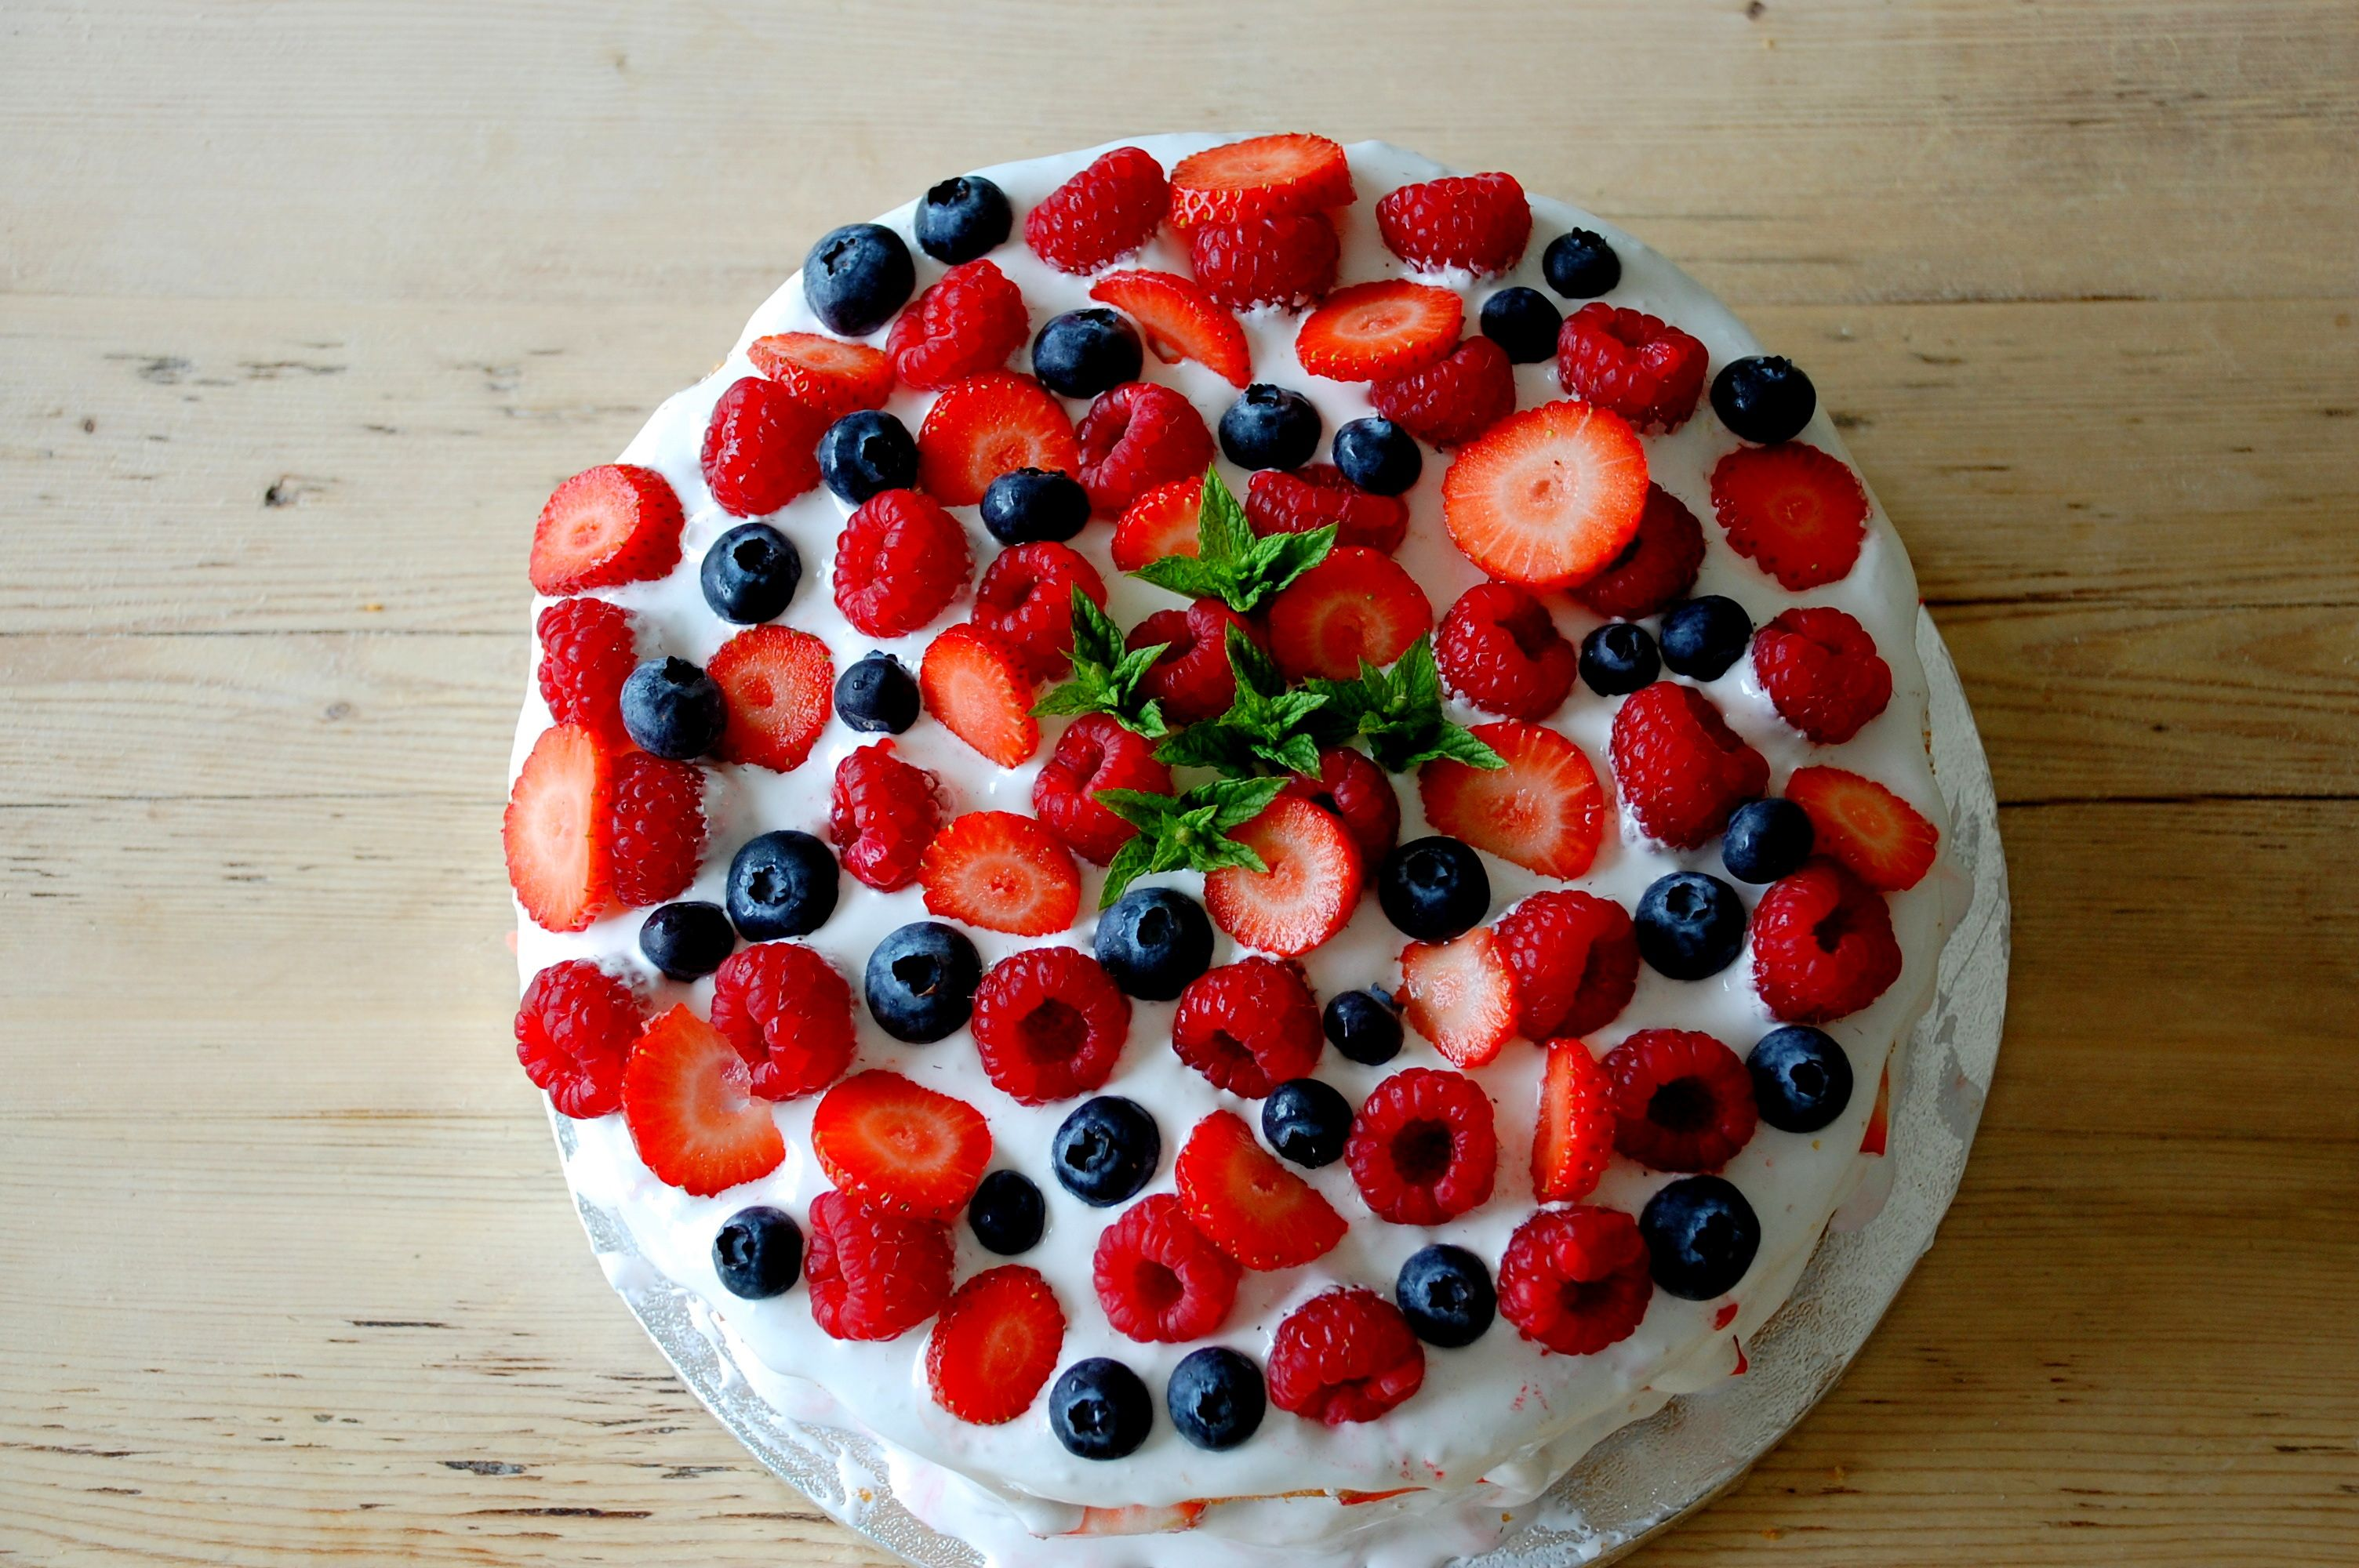 Marshmallow layered birthday cake with fresh fruit and mint